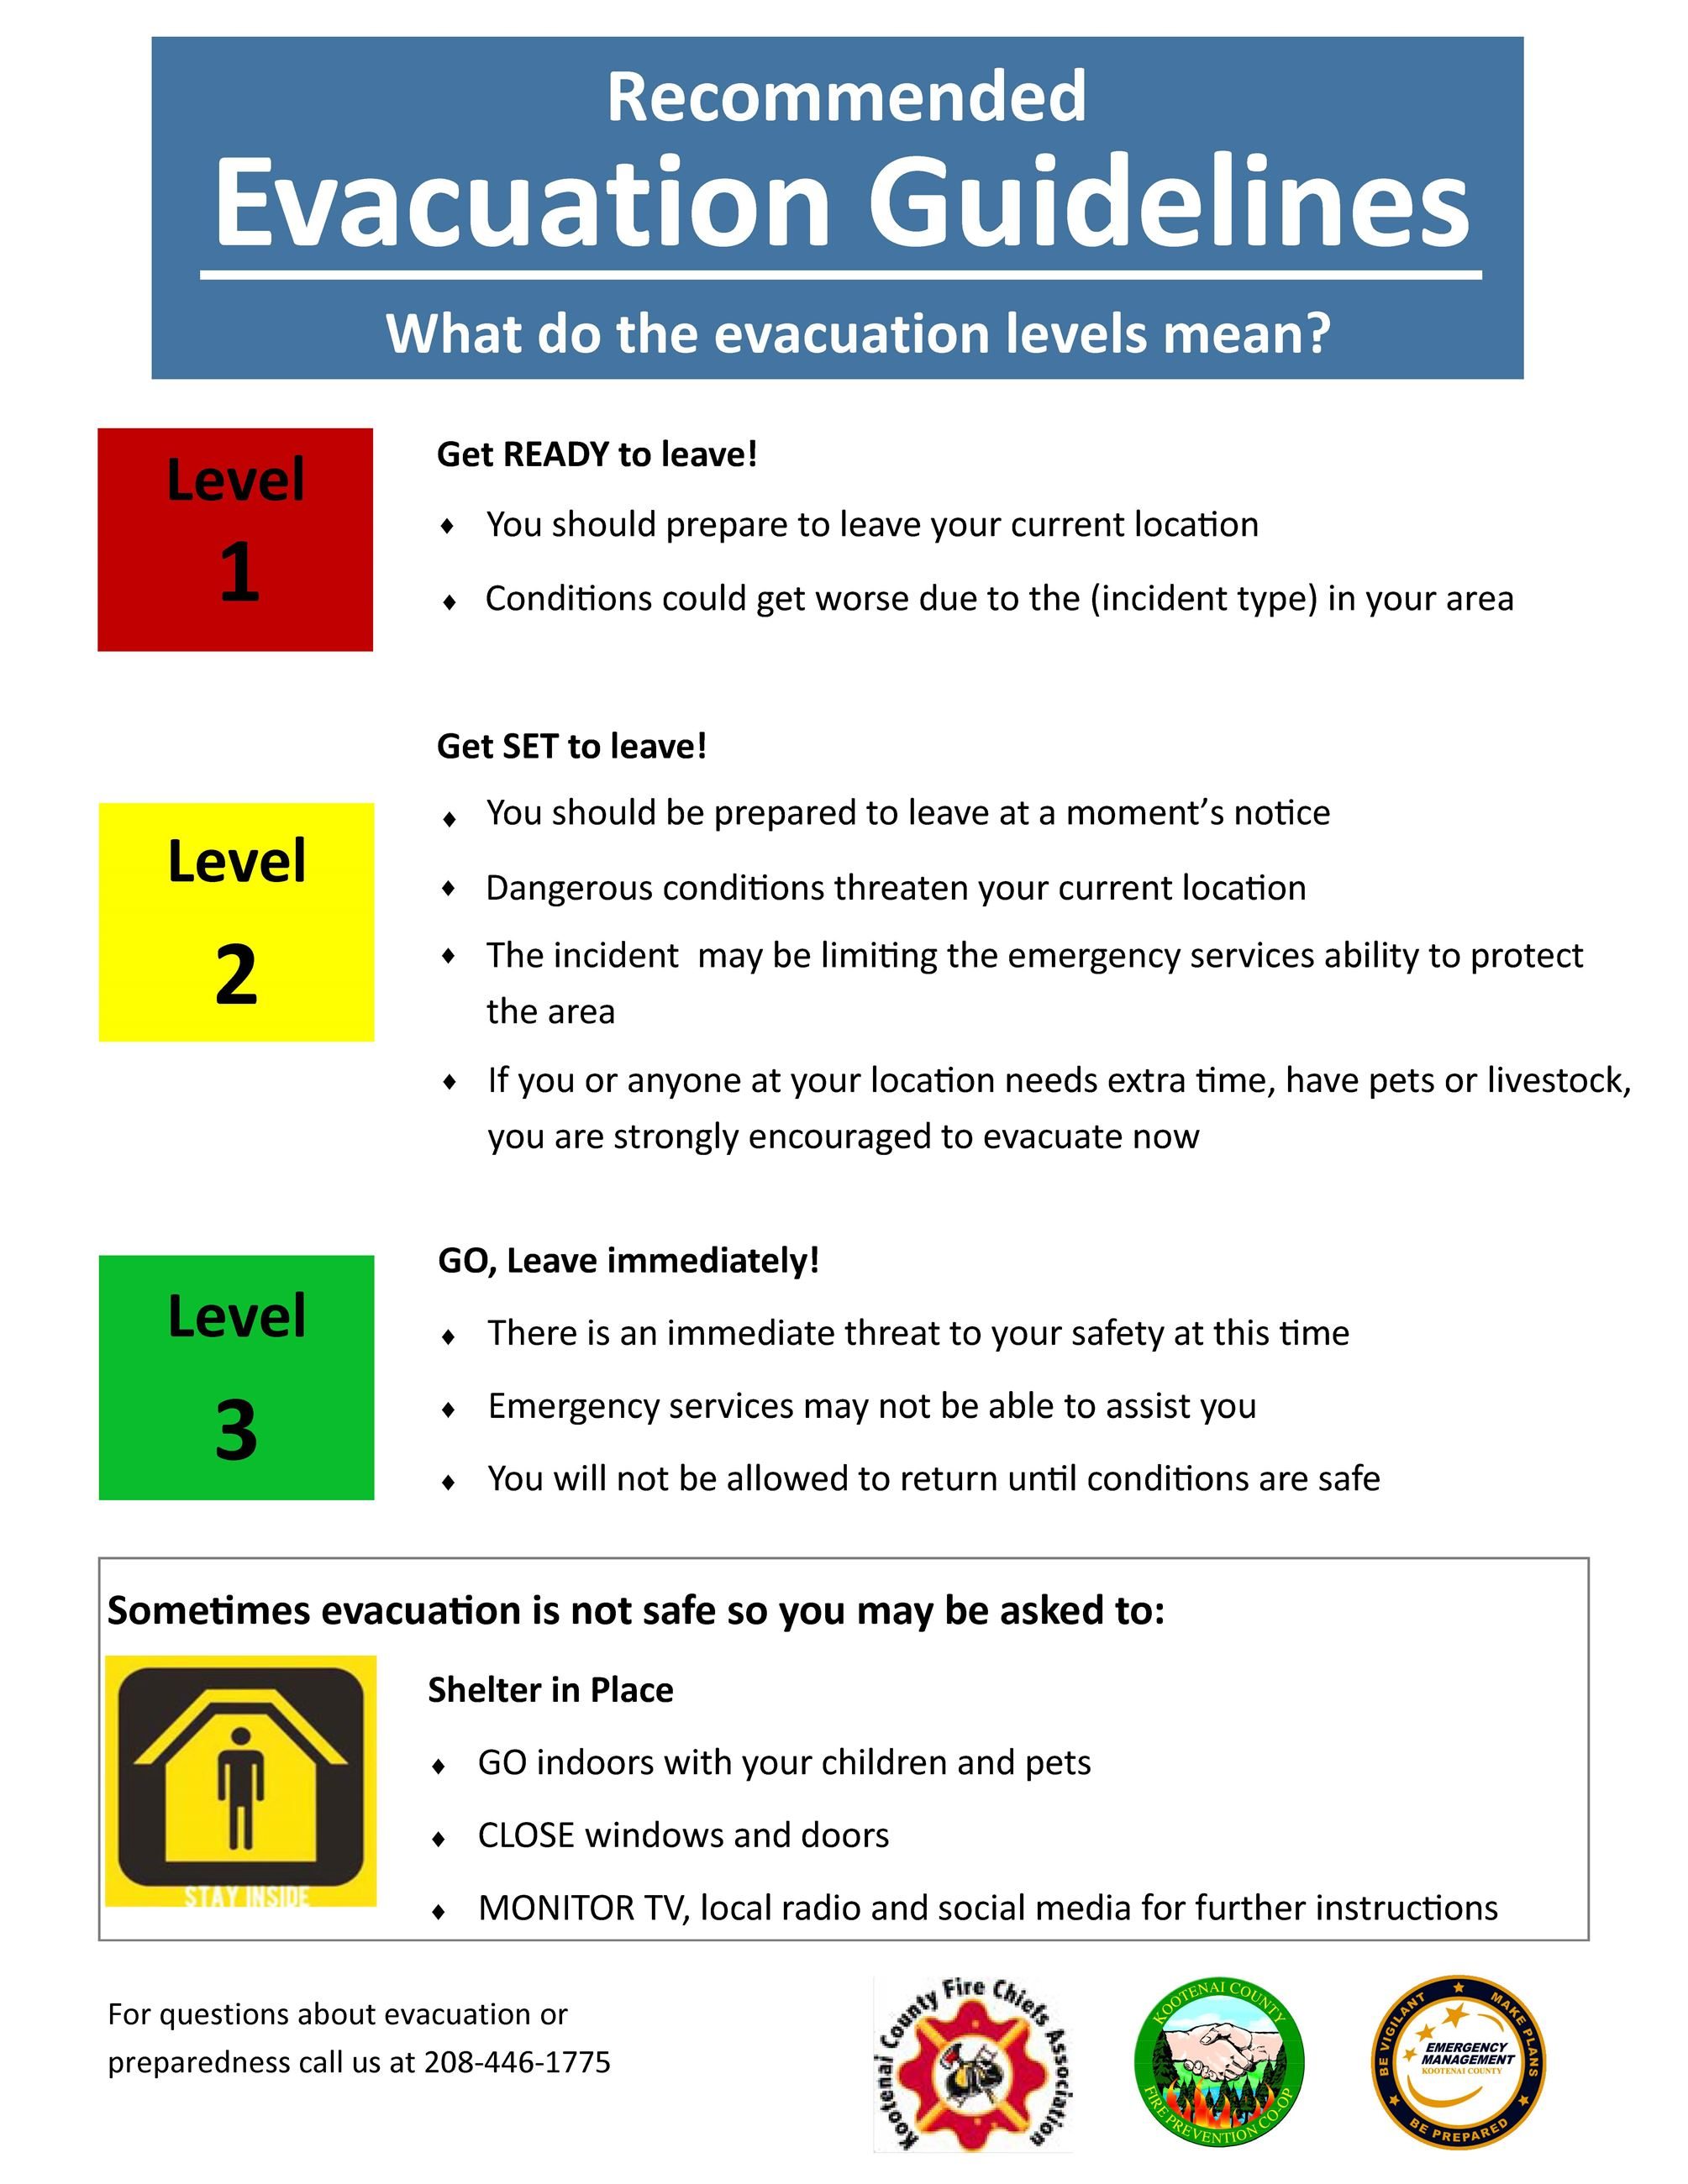 Recommended evacuation guidelines